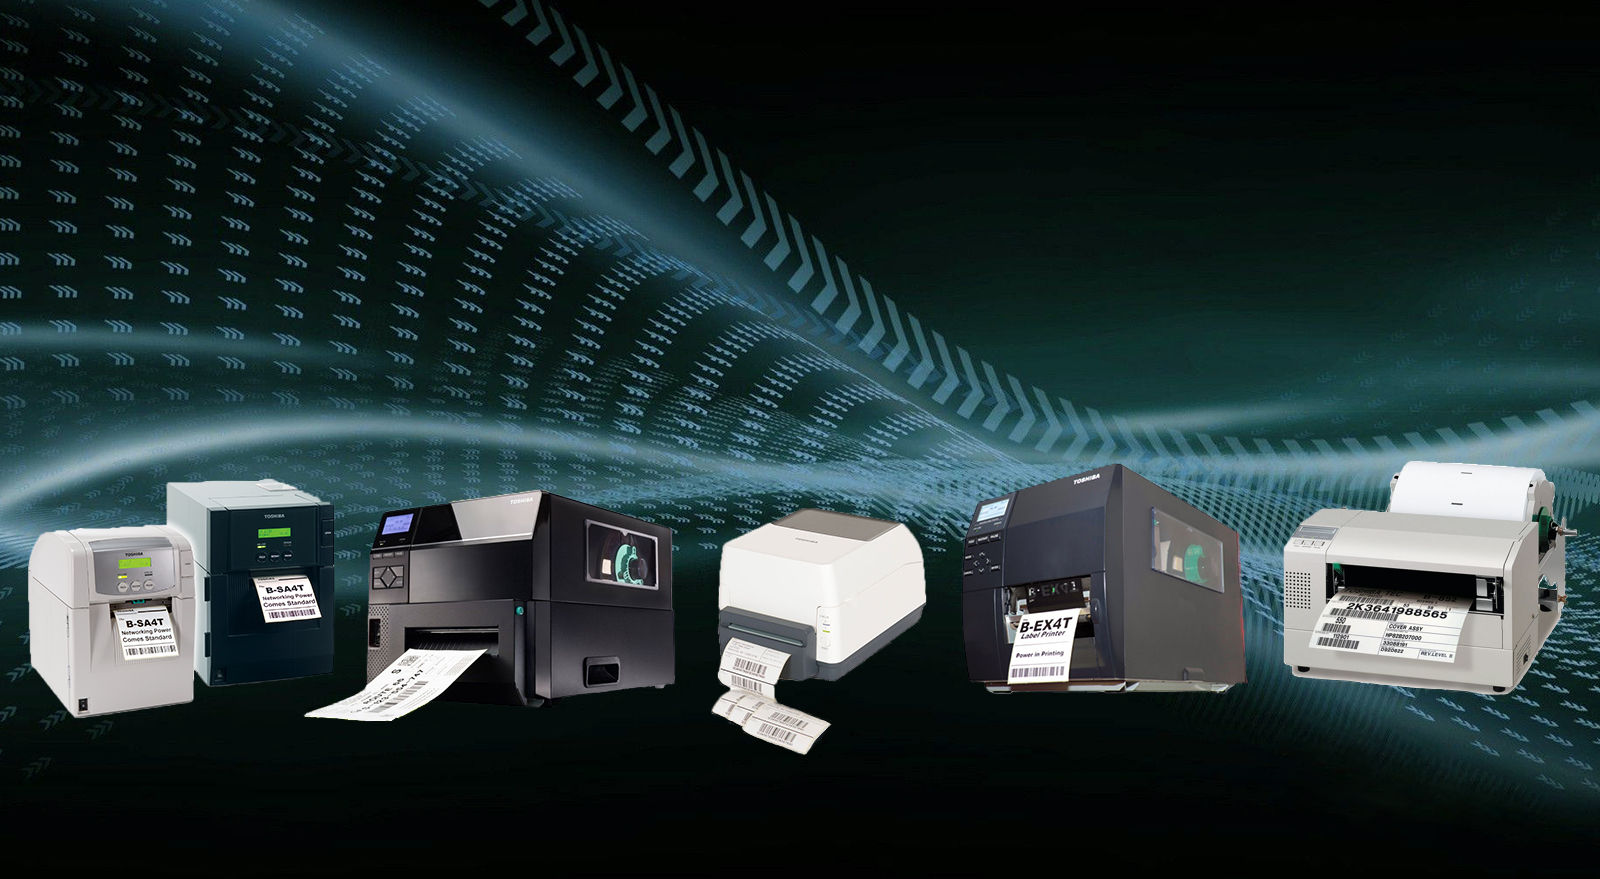 BARCODE PRINTER AND SCANNER